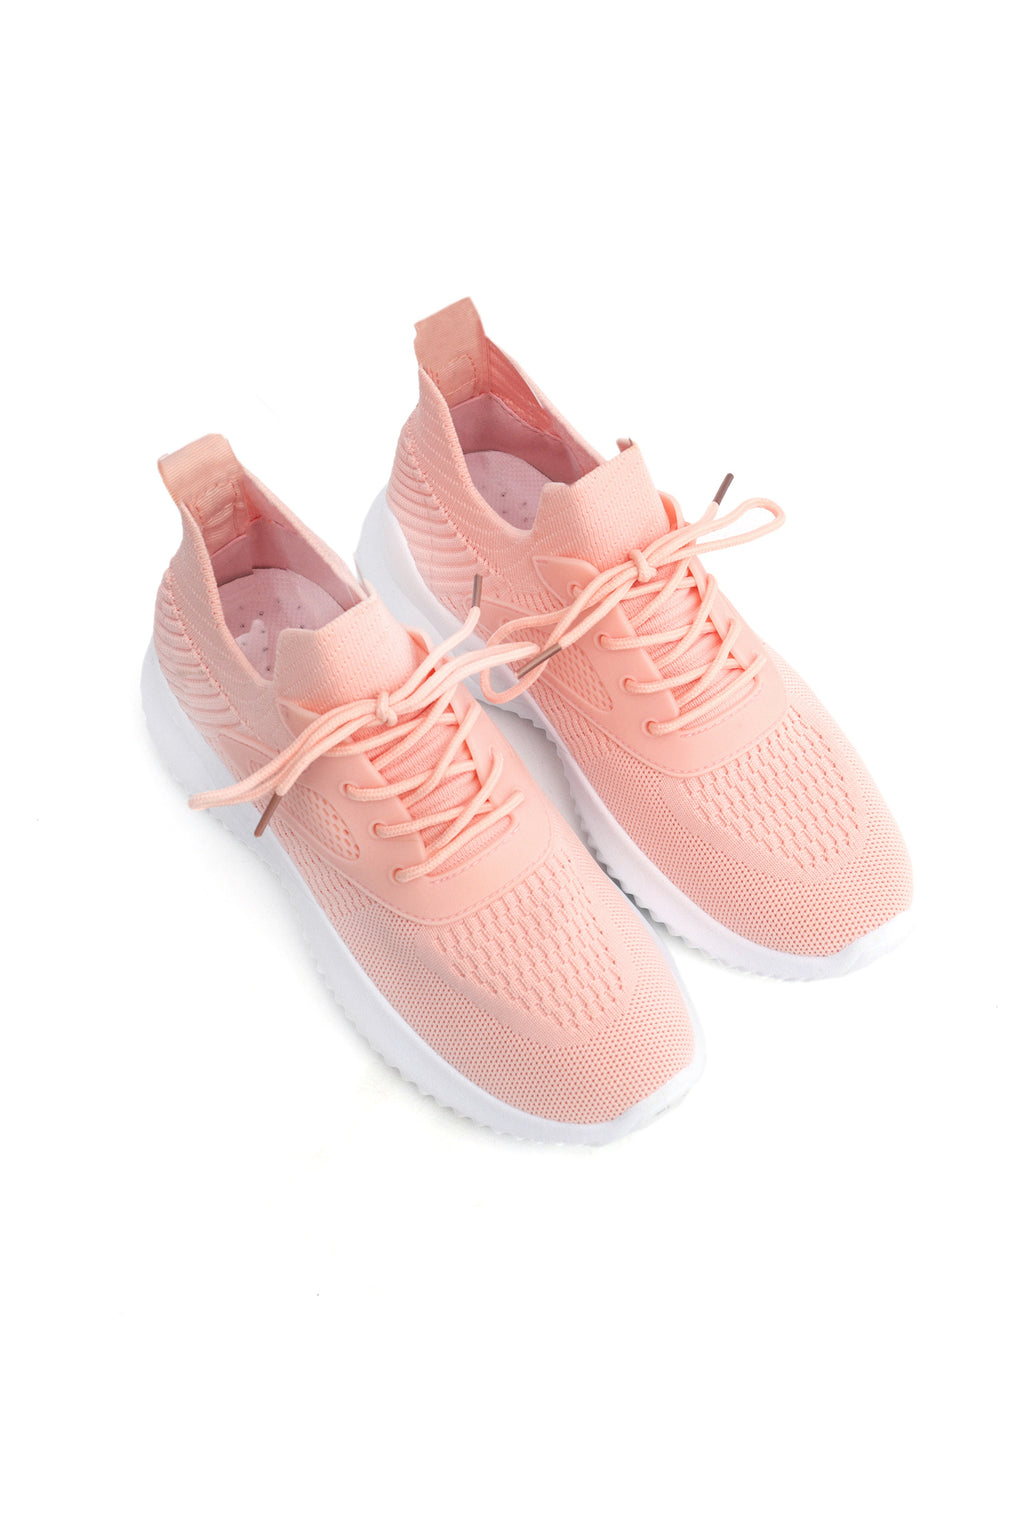 BOOST TRAINERS -PINK